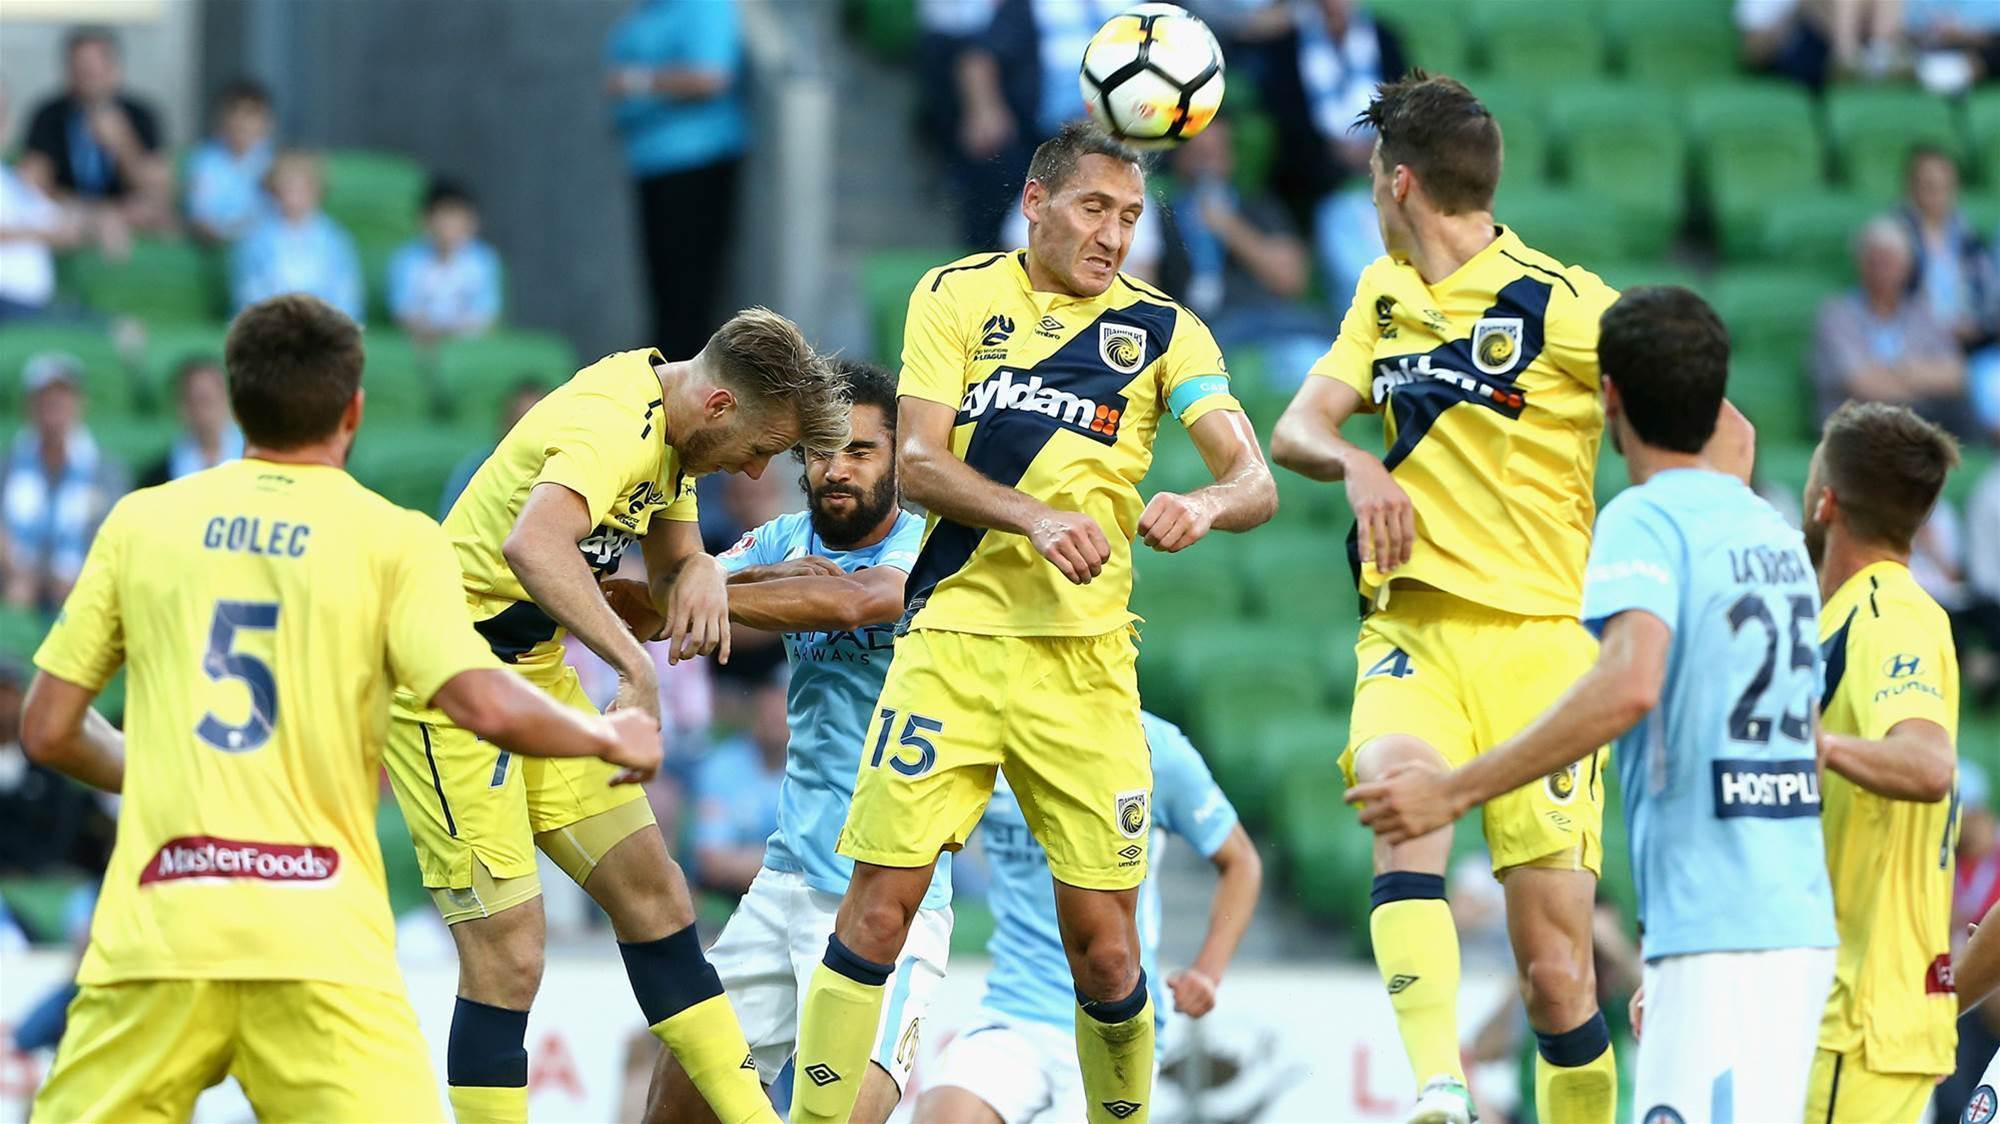 City v Mariners player ratings